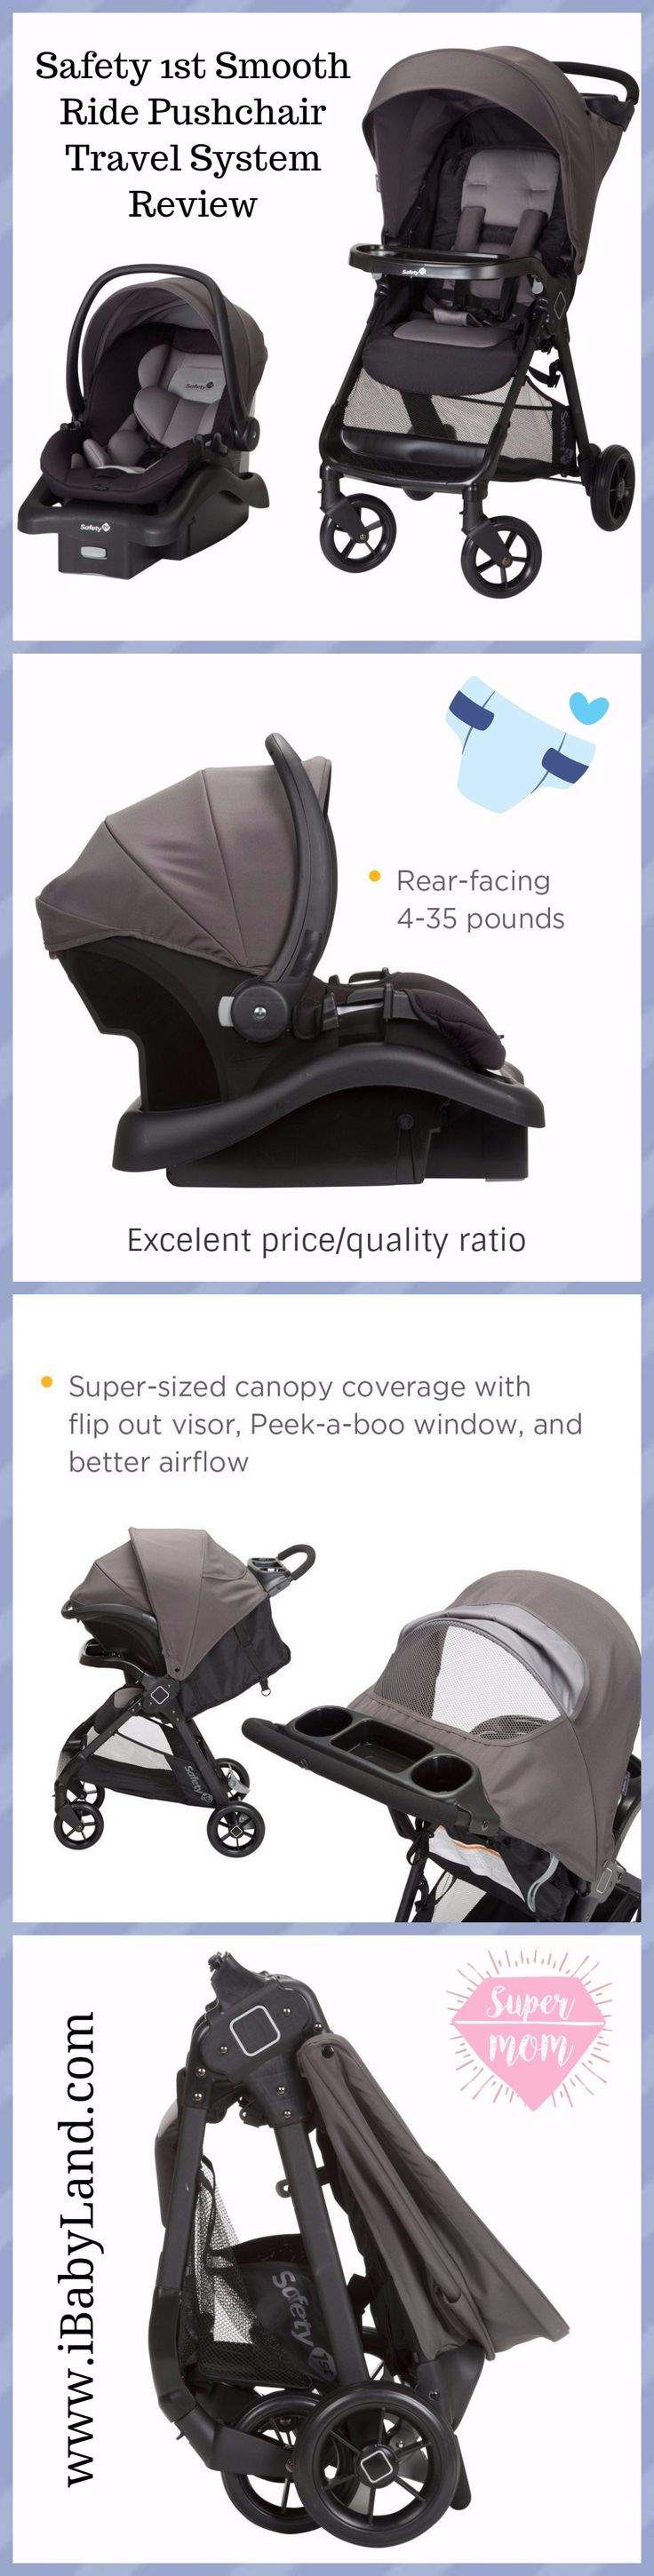 Best baby stroller carseat review | We definitely believe the Safety 1st Smooth Ride Pushchair Travel System is one of the best value travel systems available today. For around the $150...(read more)